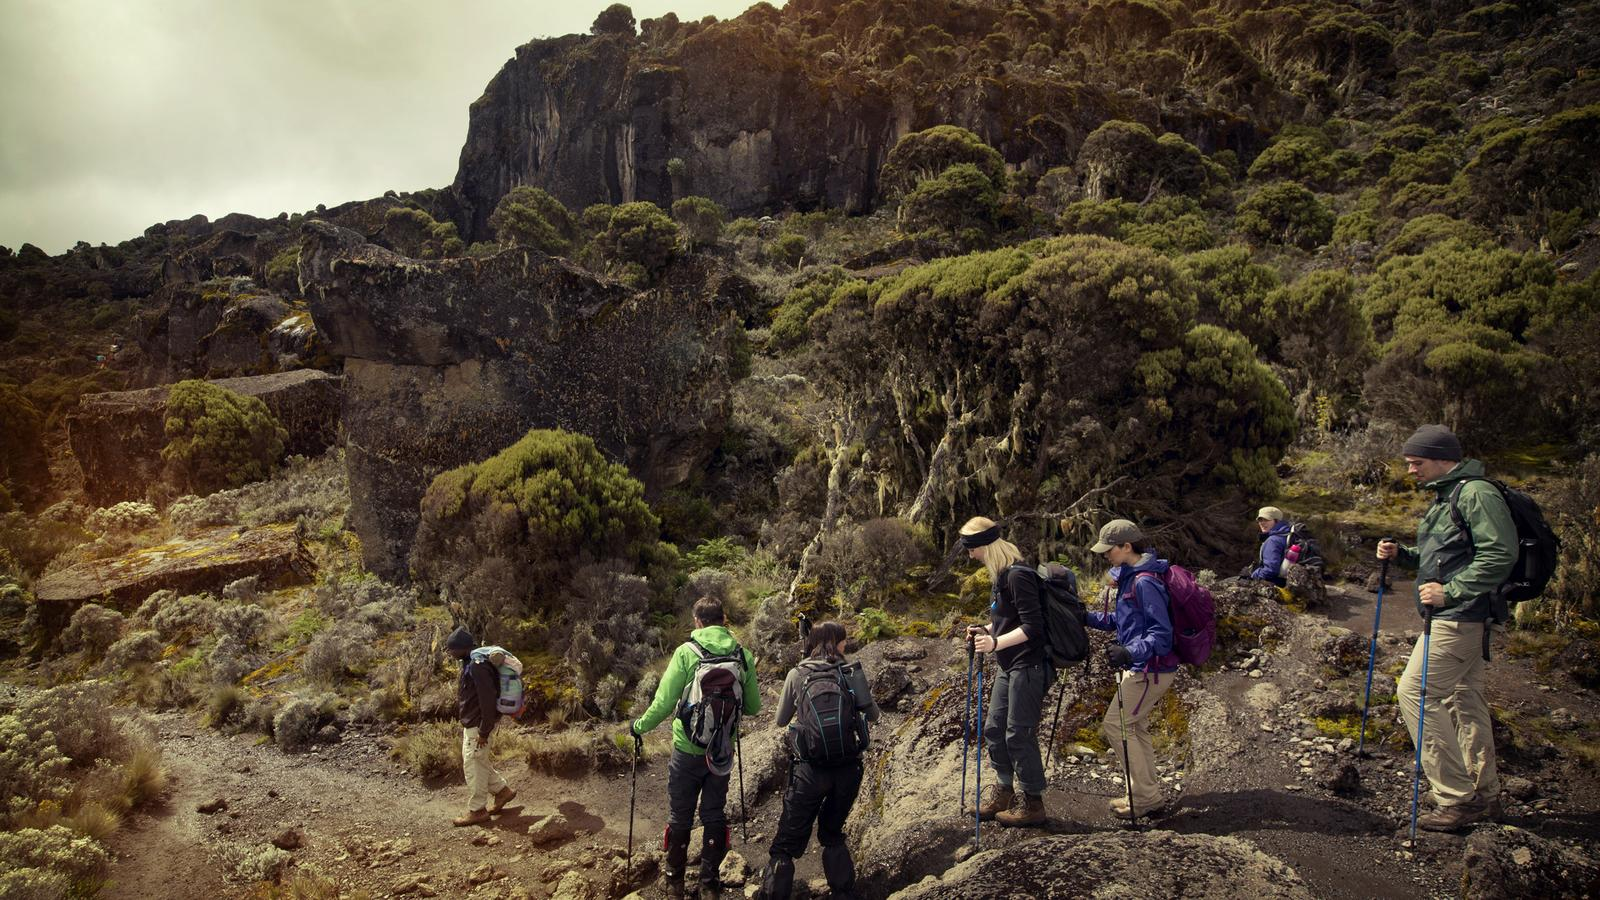 Group of travellers hiking up Mt.Kilimanjaro during Day 3 of the trek in Tanzania